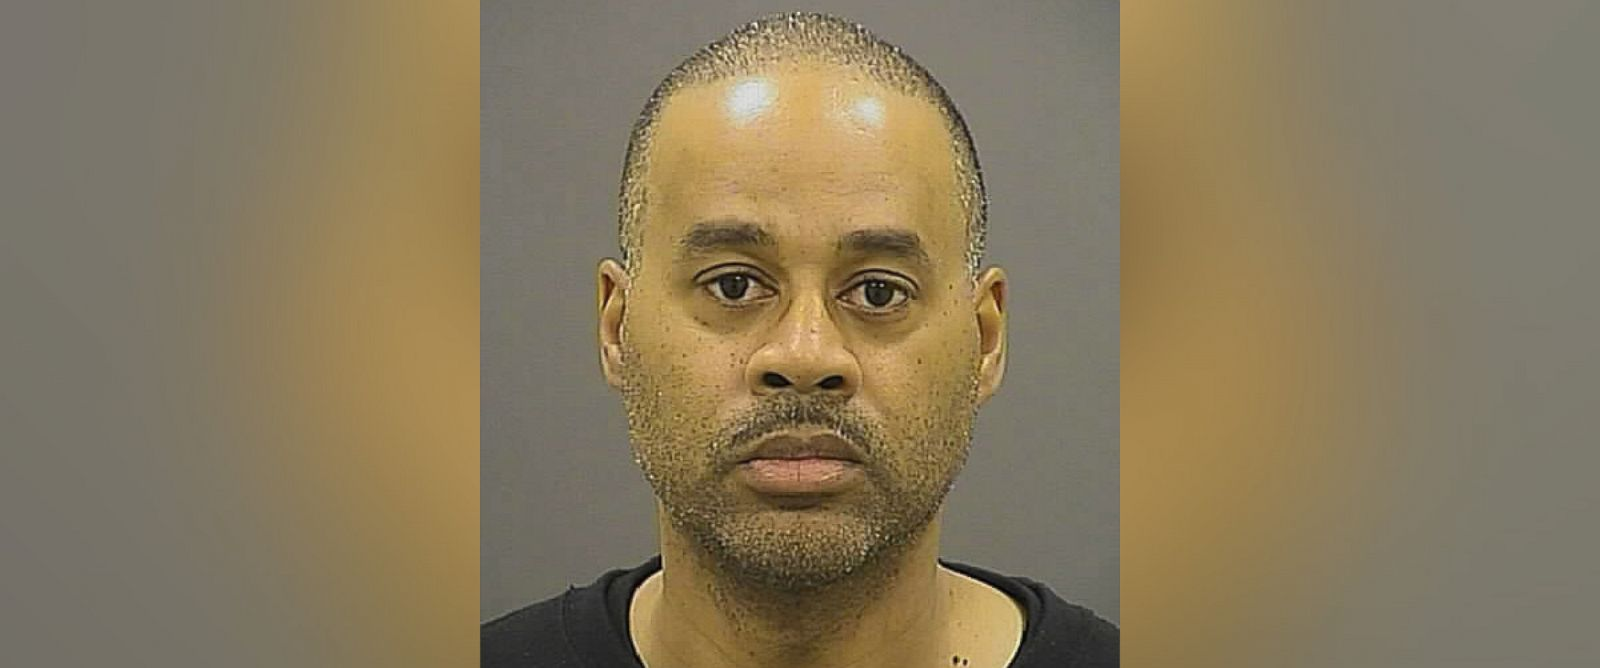 PHOTO: This photo provided by the Baltimore Police Department on May 1, 2015 shows Caesar R. Goodson Jr., one of six police officers charged with felonies ranging from assault to murder in the death of Freddie Gray.